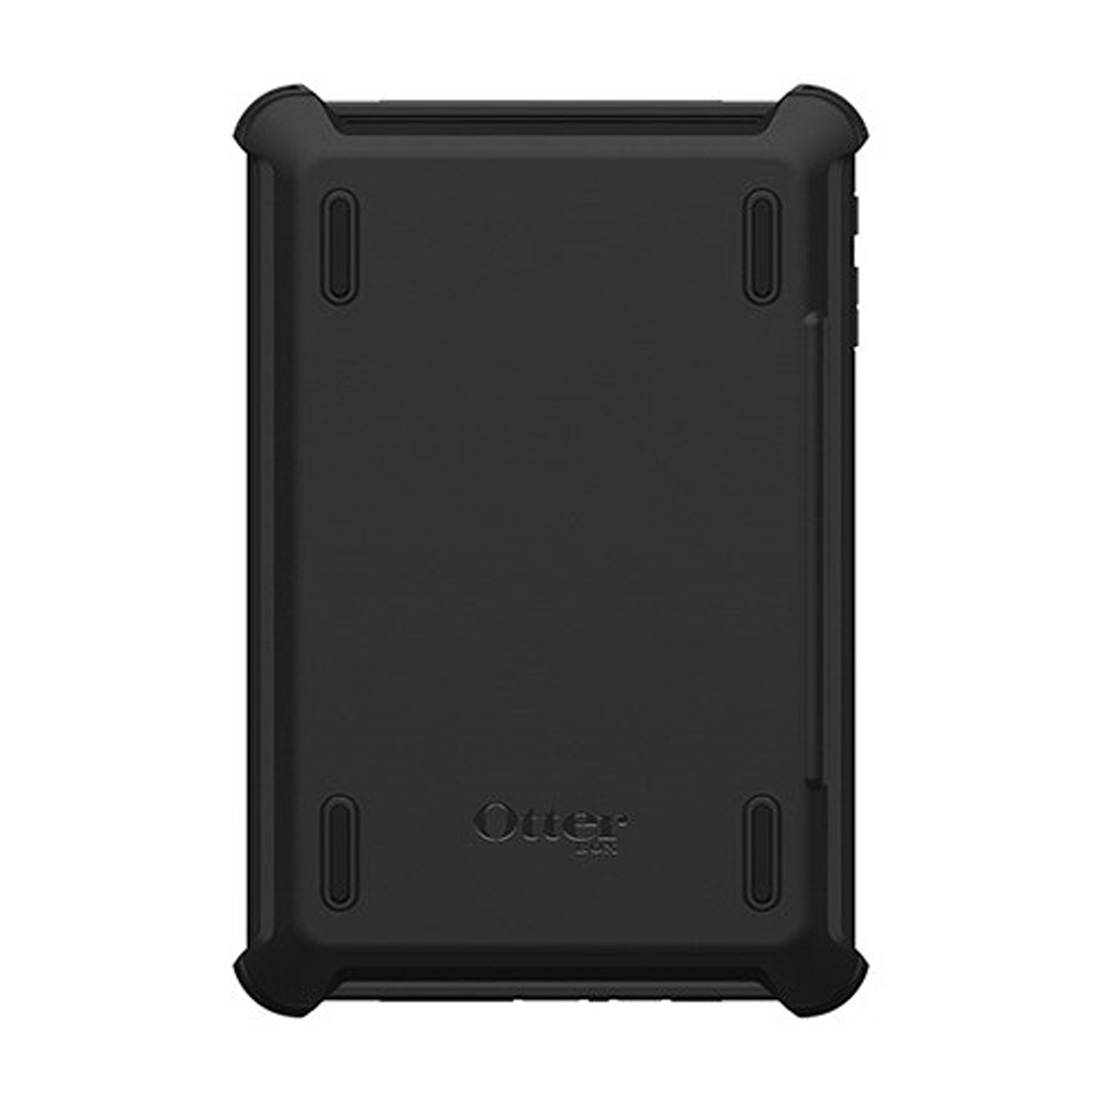 OtterBox Defender Case For Samsung Galaxy Tab S4 - Black